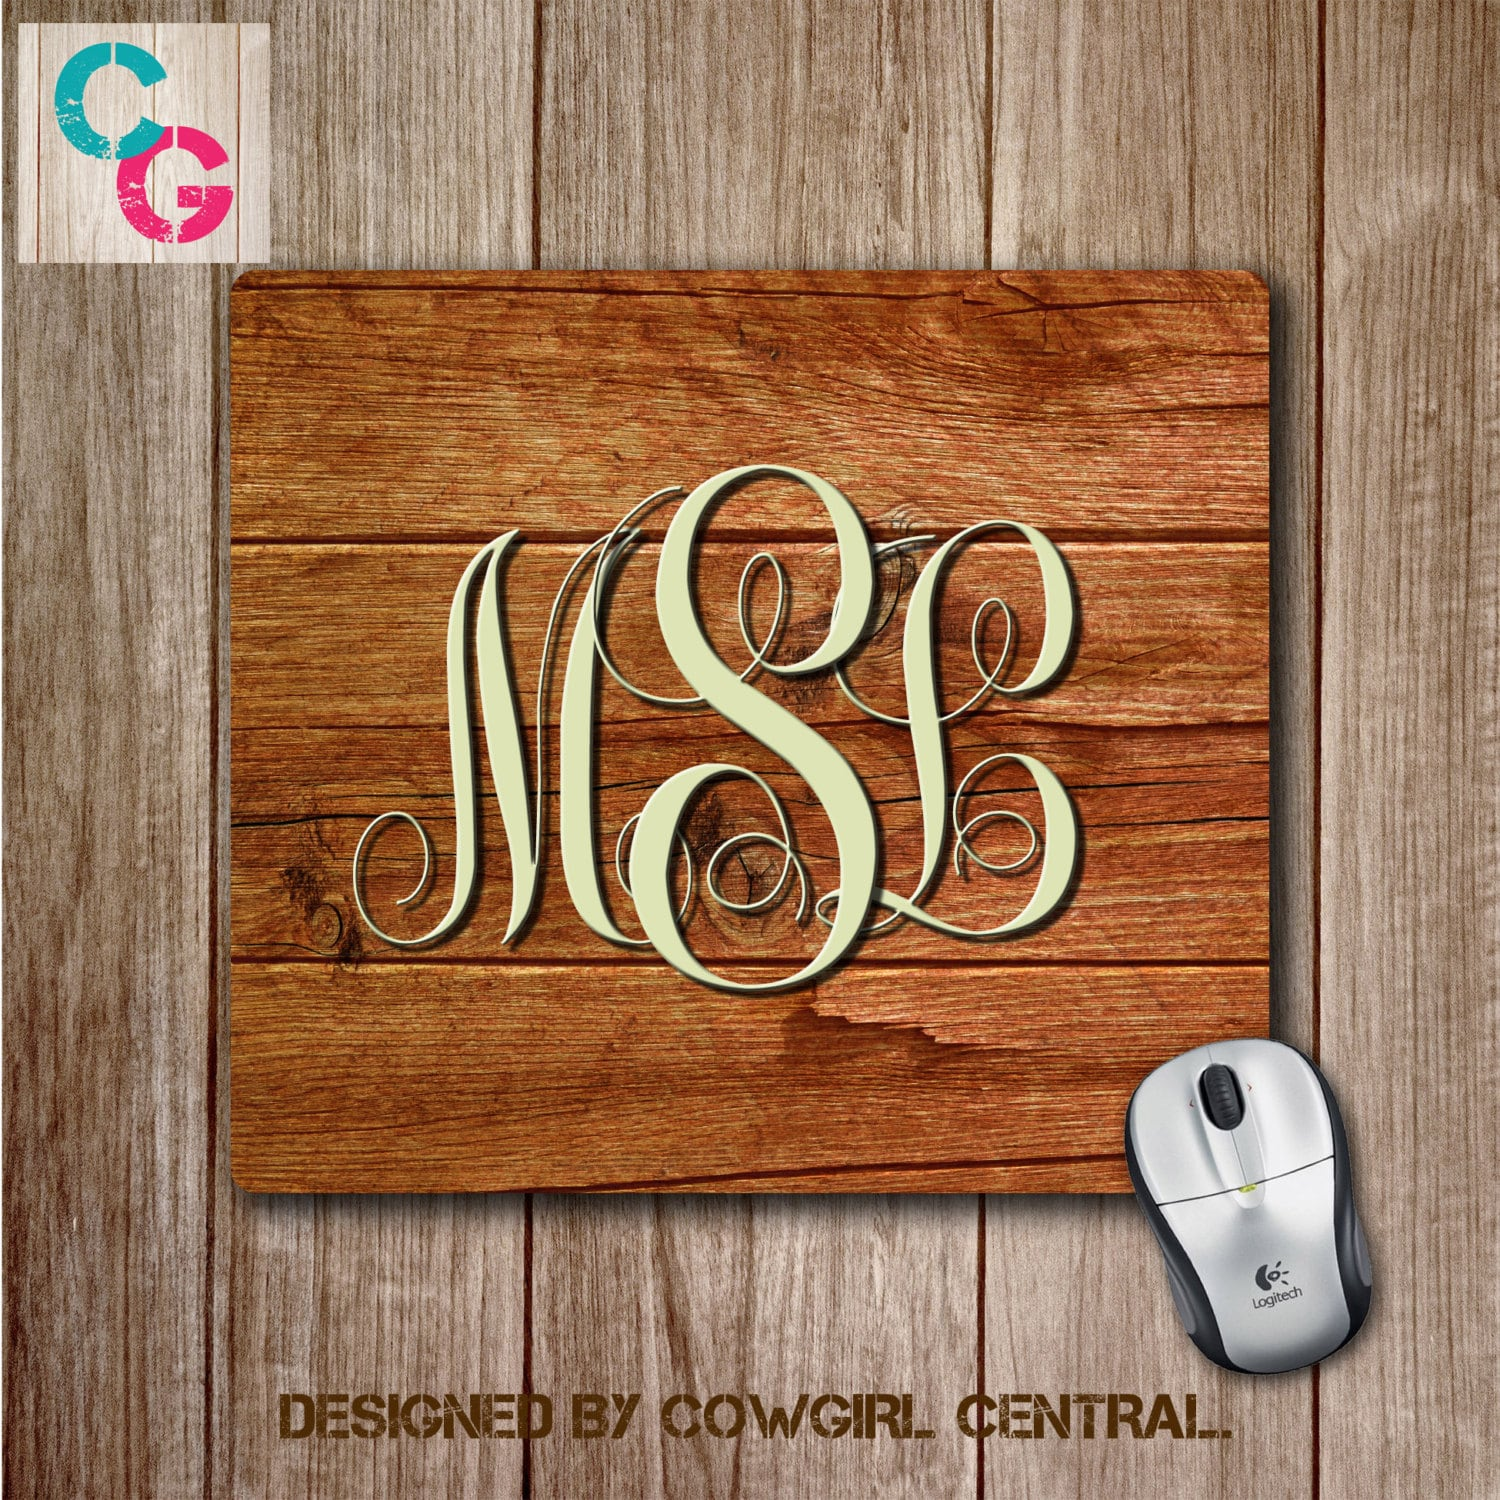 Gallant Monogram Mouse Personalized Mouse Custom Mouse Desk Mousepads Monogram Mouse Personalized Mouse Custom Mouse Pad Personalized Mouse Pads Walmart Personalized Mouse Pads Business custom Personalized Mouse Pads